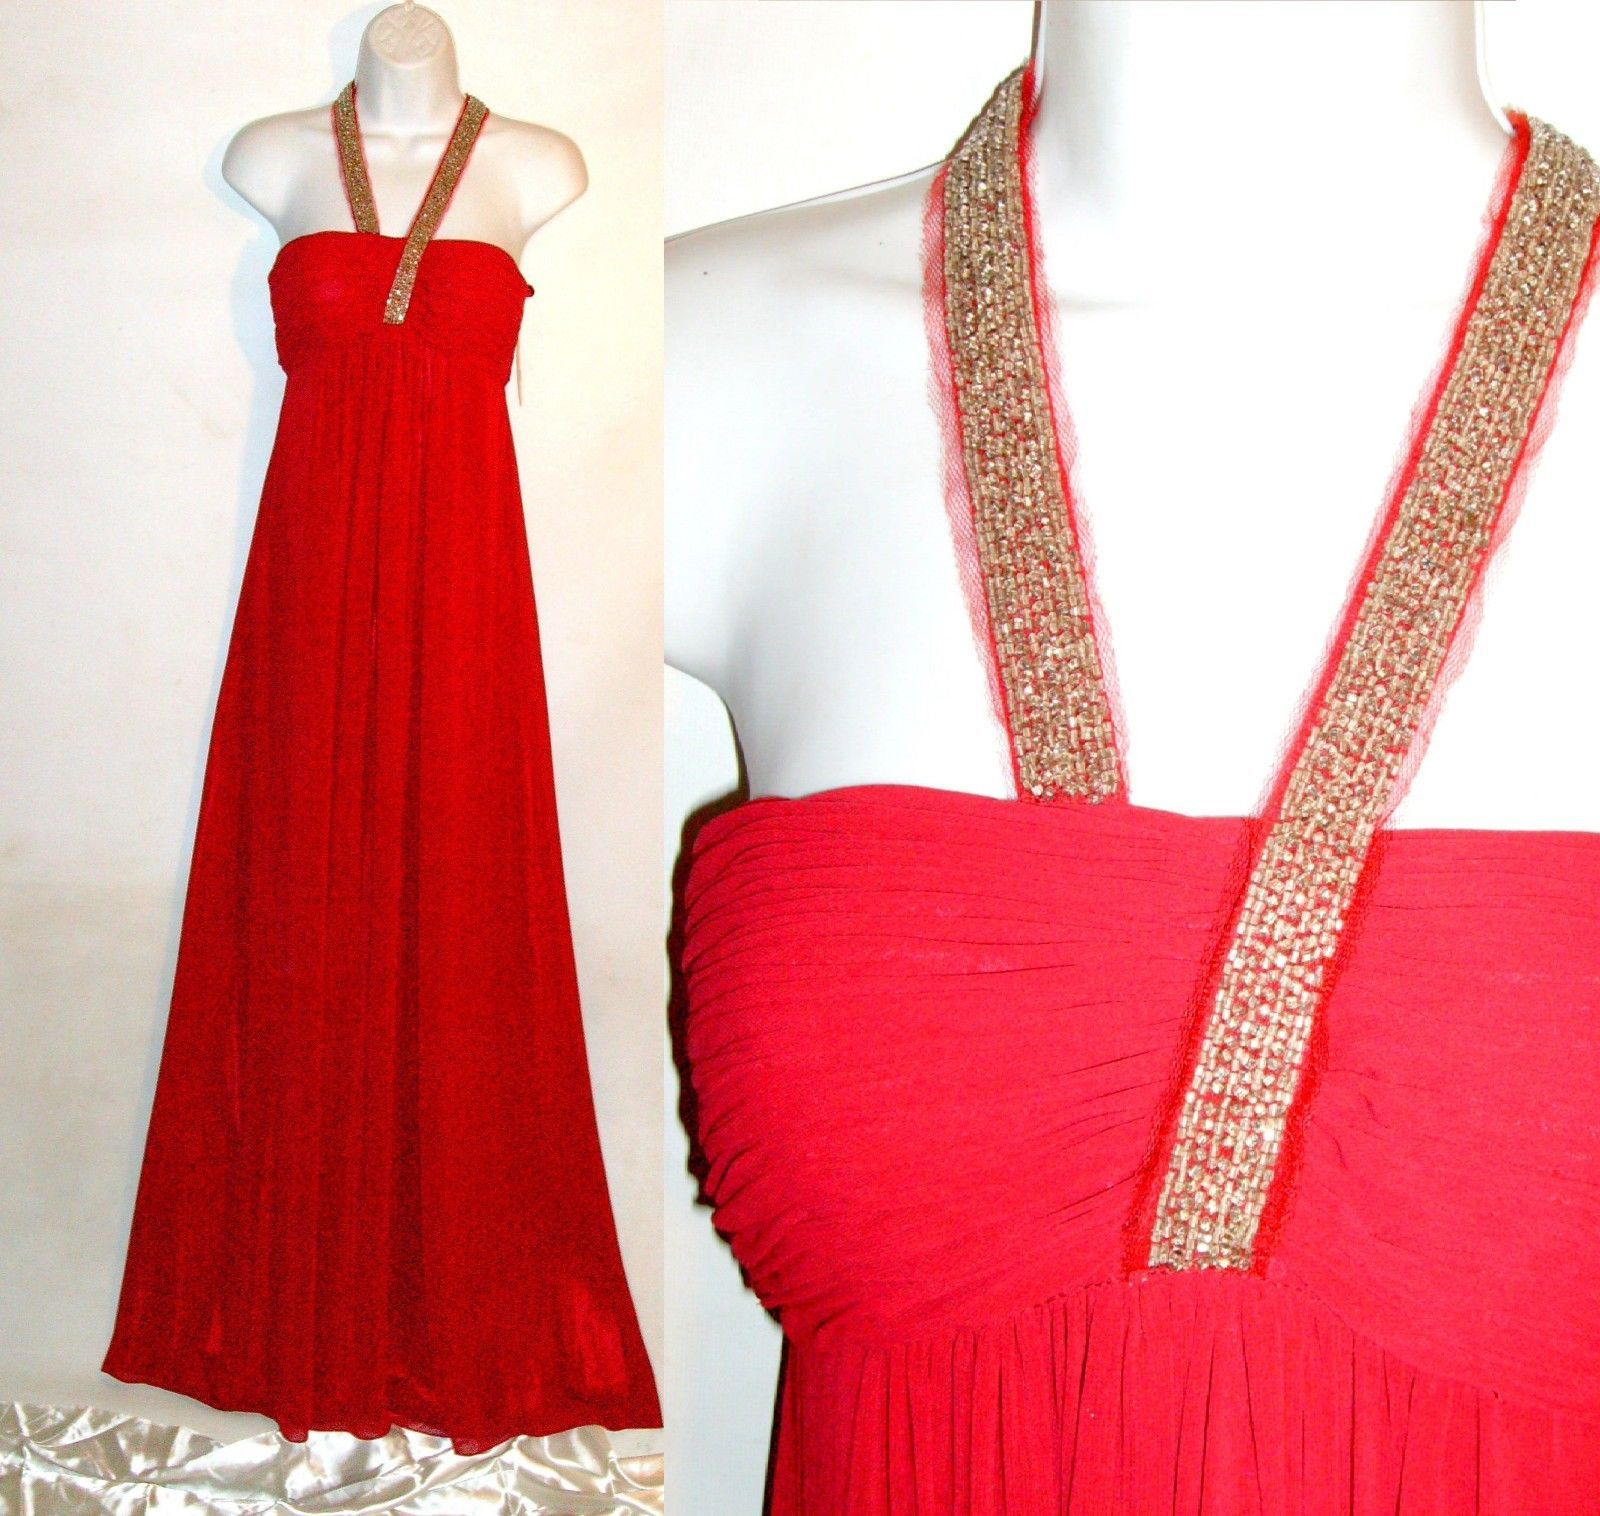 Cool amazing nwt jdo red gown beaded formal chiffon satin evening